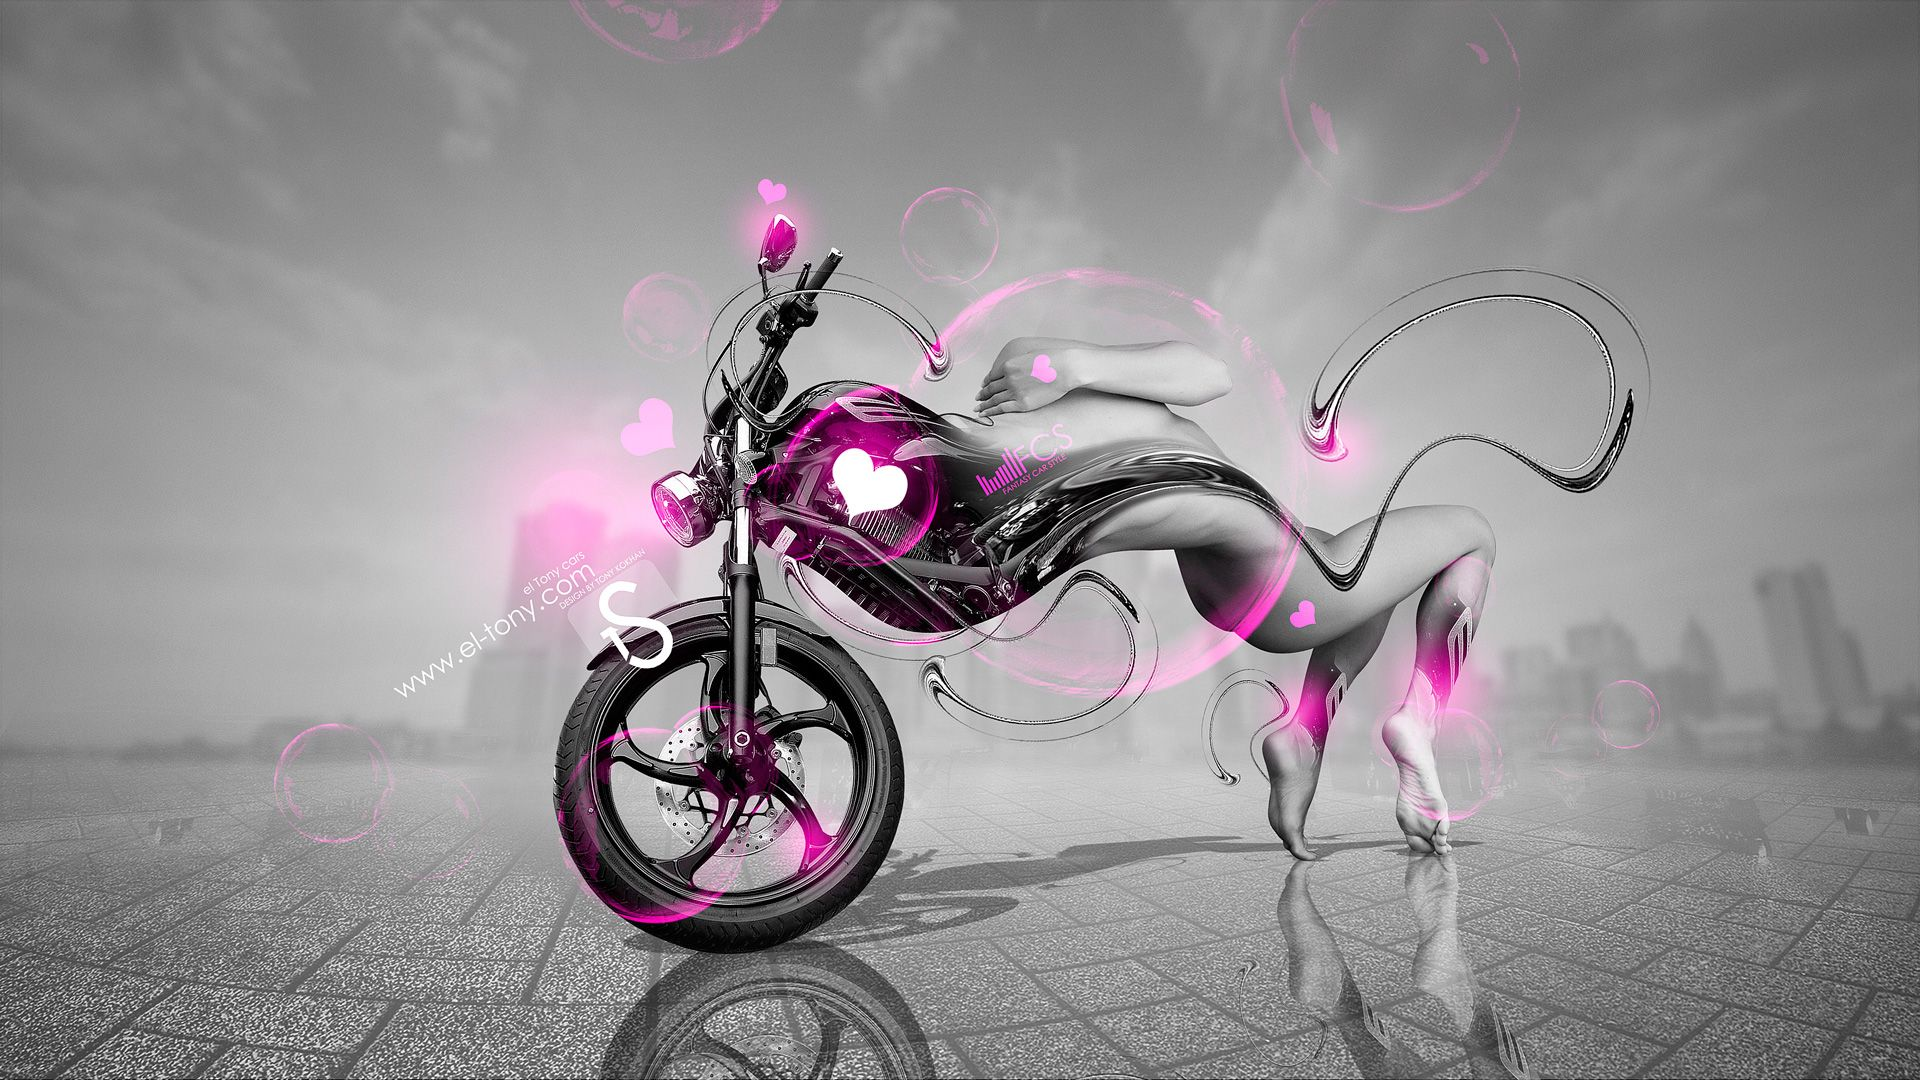 Merveilleux Velo Bike CKT Fantasy Sexy Girl 2013 Violet Neon HD Wallpapers Design By Tony Kokhan Www.el Tony.com_  (Изображение JPEG, 1920 × 1080 пикселов) U2026